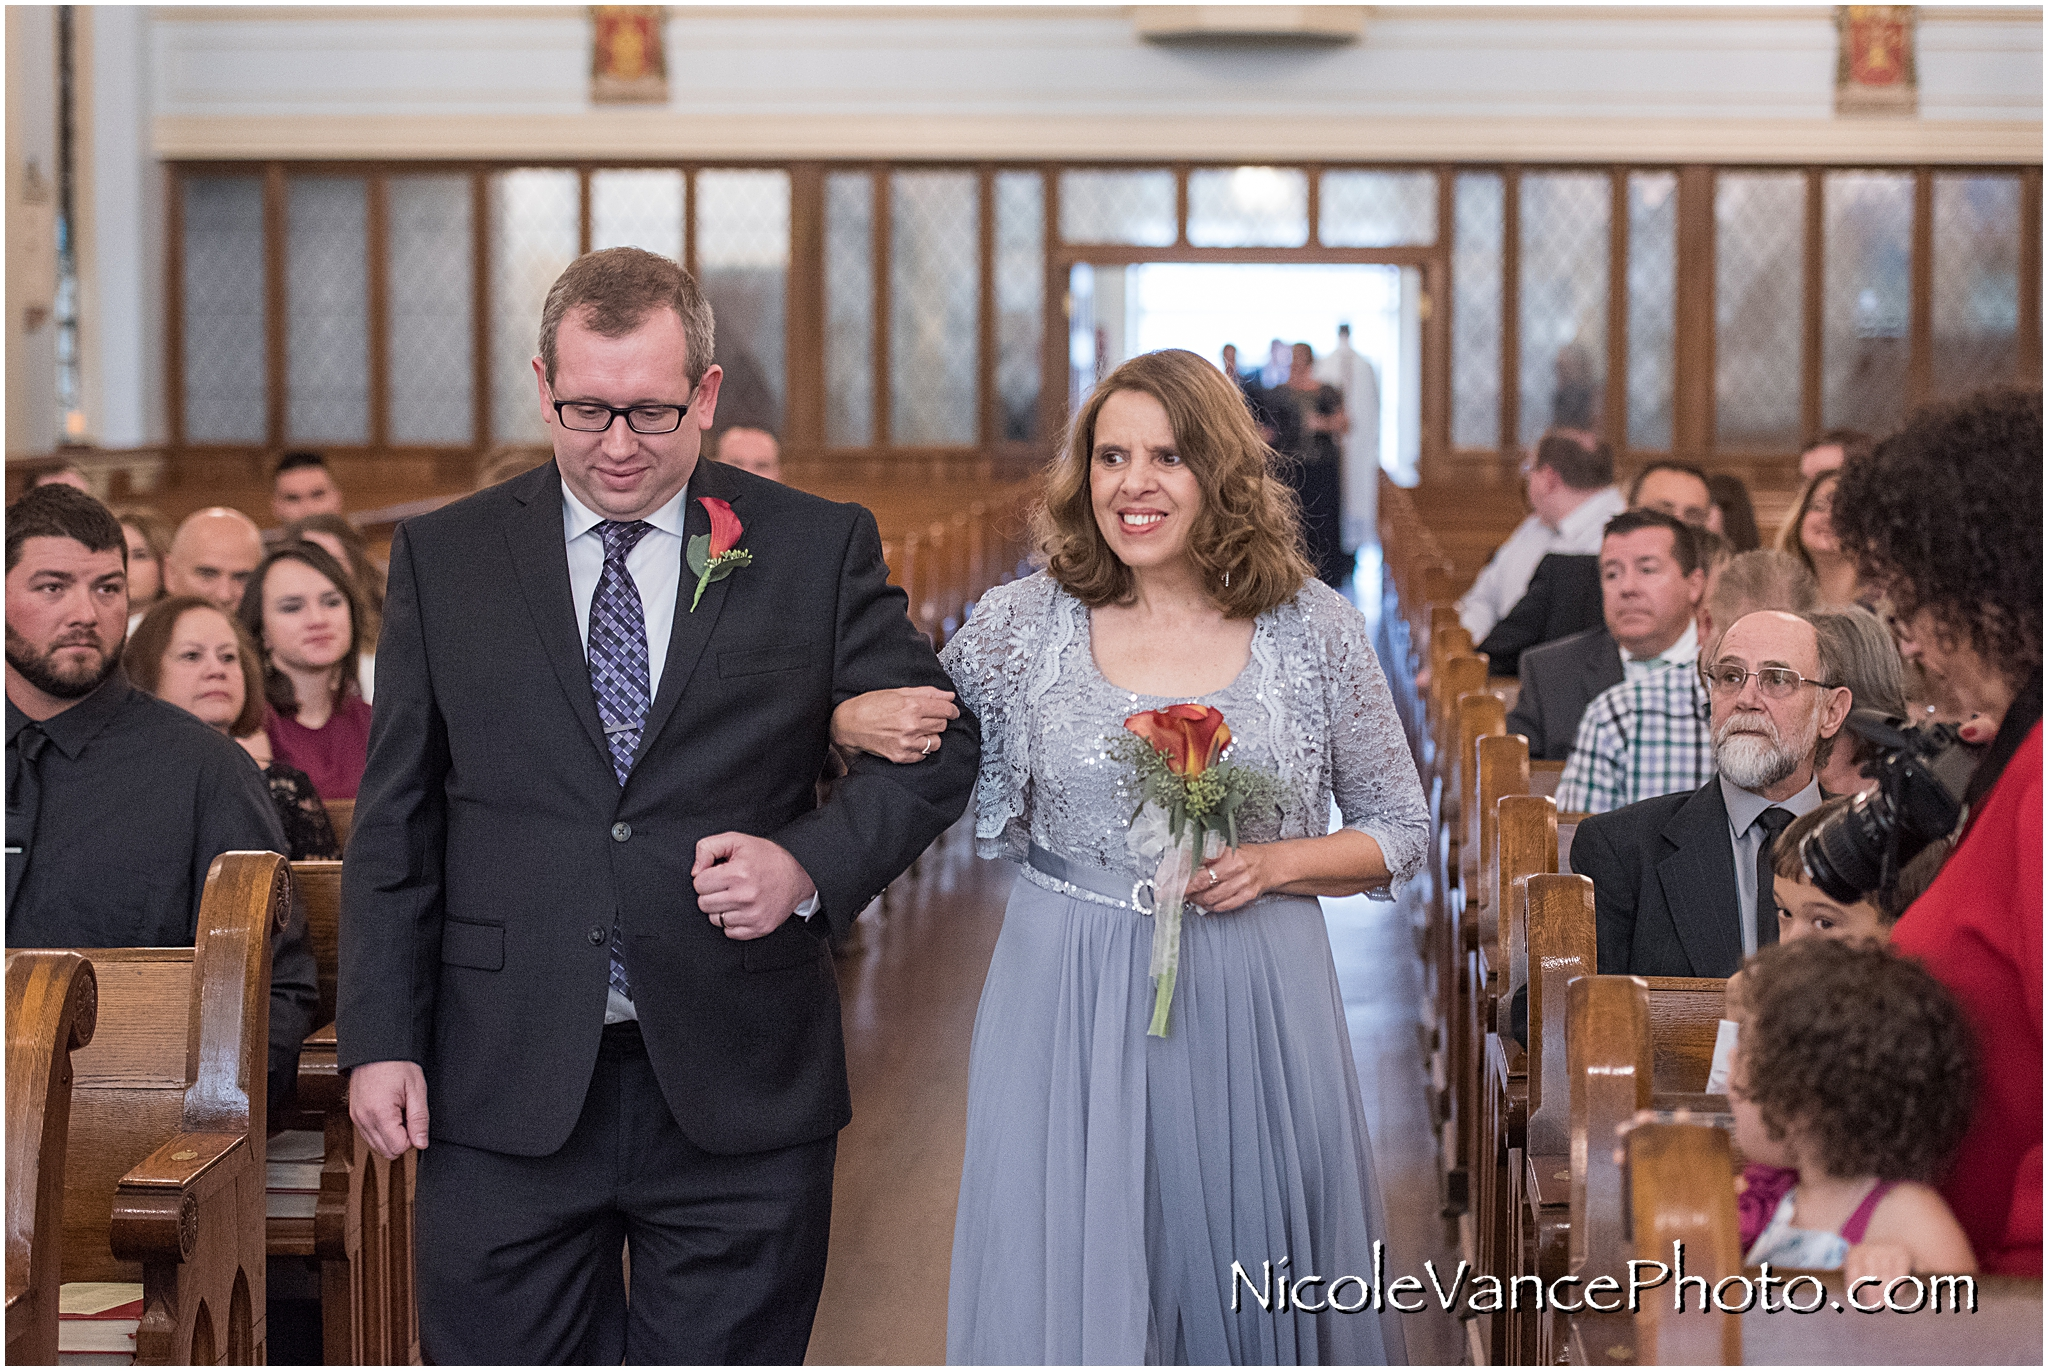 The grooms mom comes down the aisle at St Peter's Catholic Church.